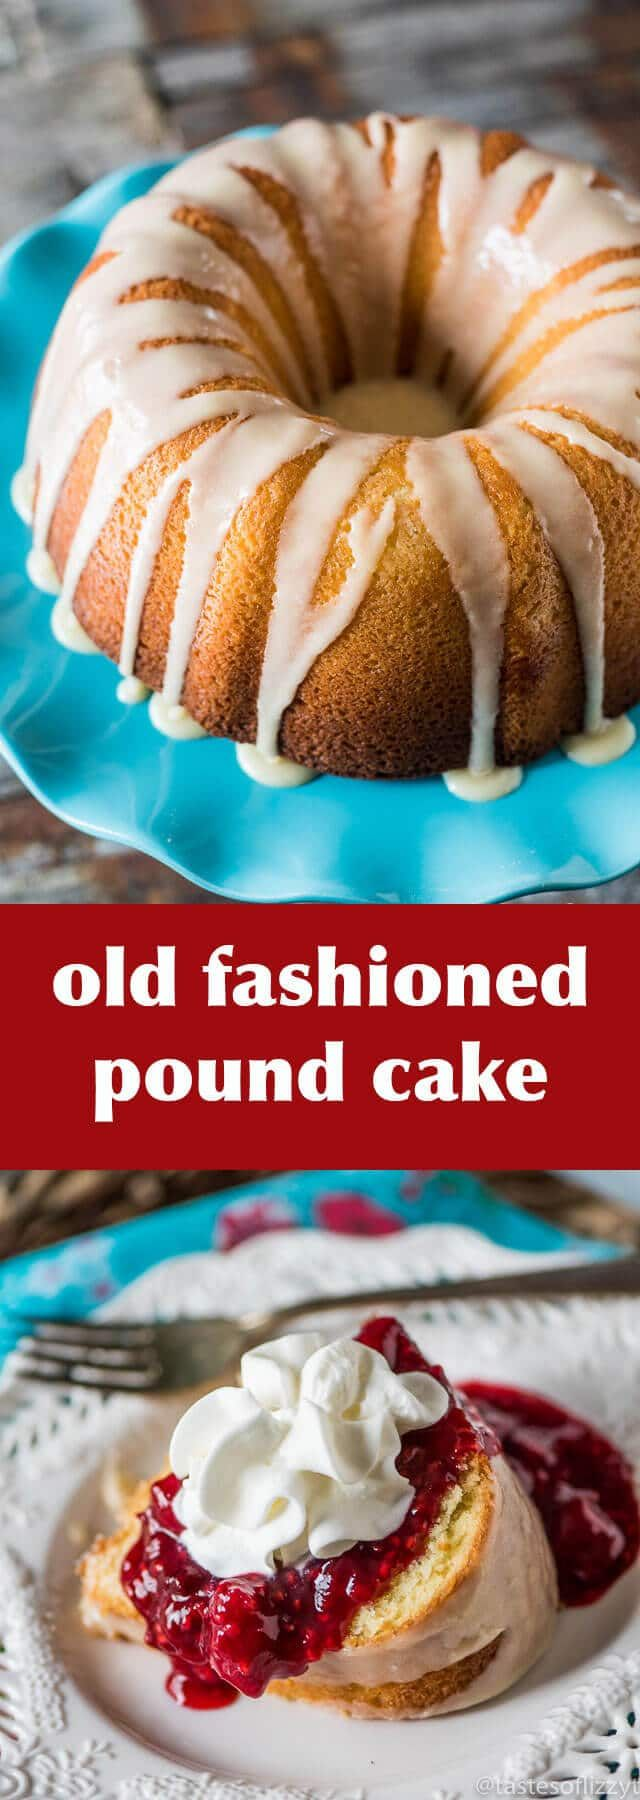 One Donut Is Equivalent To One Pound Cake